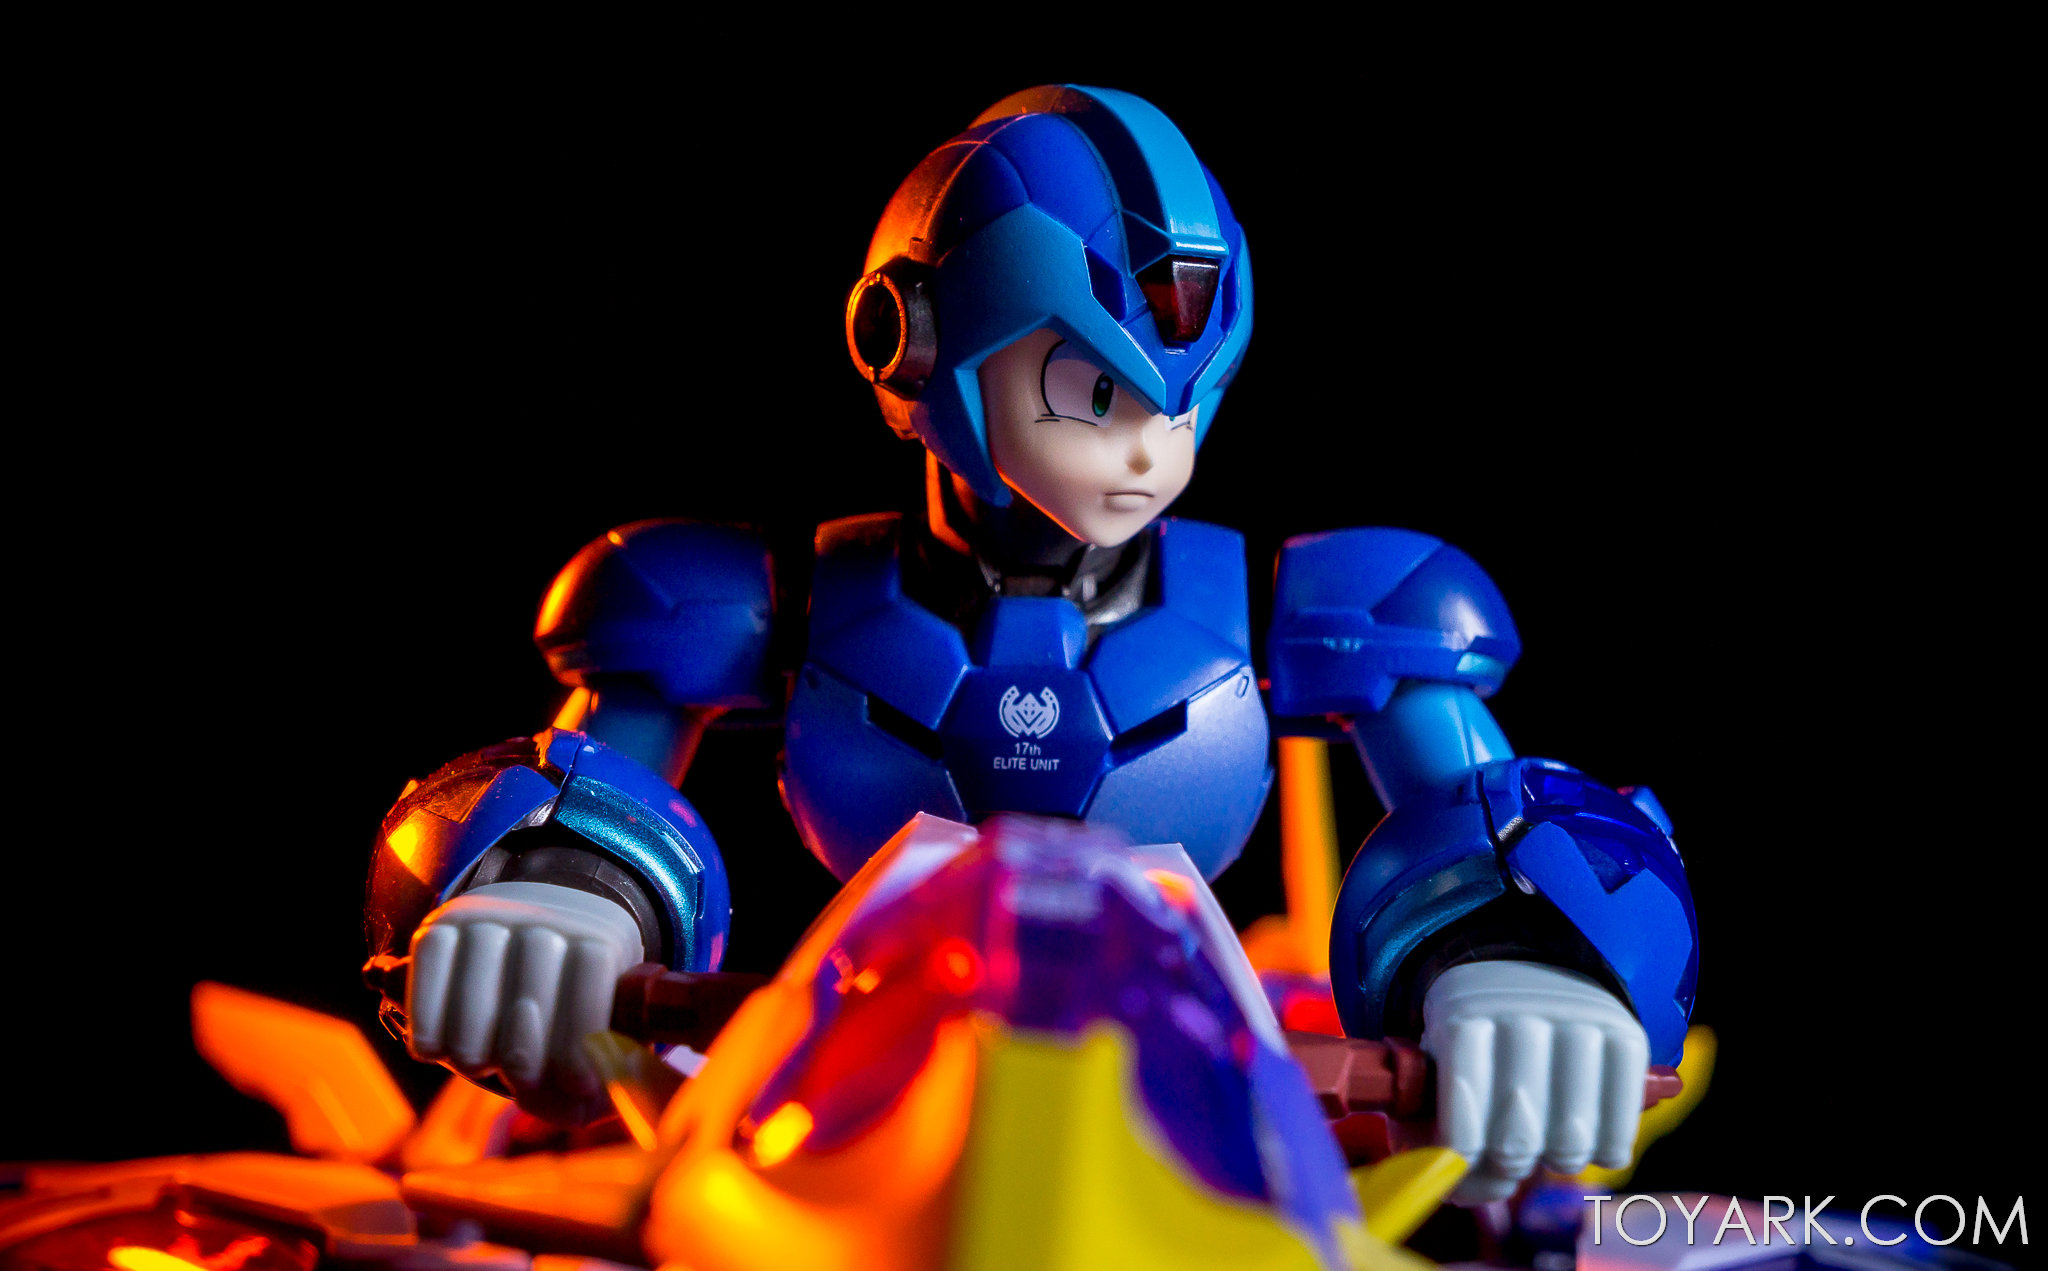 http://news.toyark.com/wp-content/uploads/sites/4/2018/01/Mega-Man-X-Giga-Armor-00037.jpg